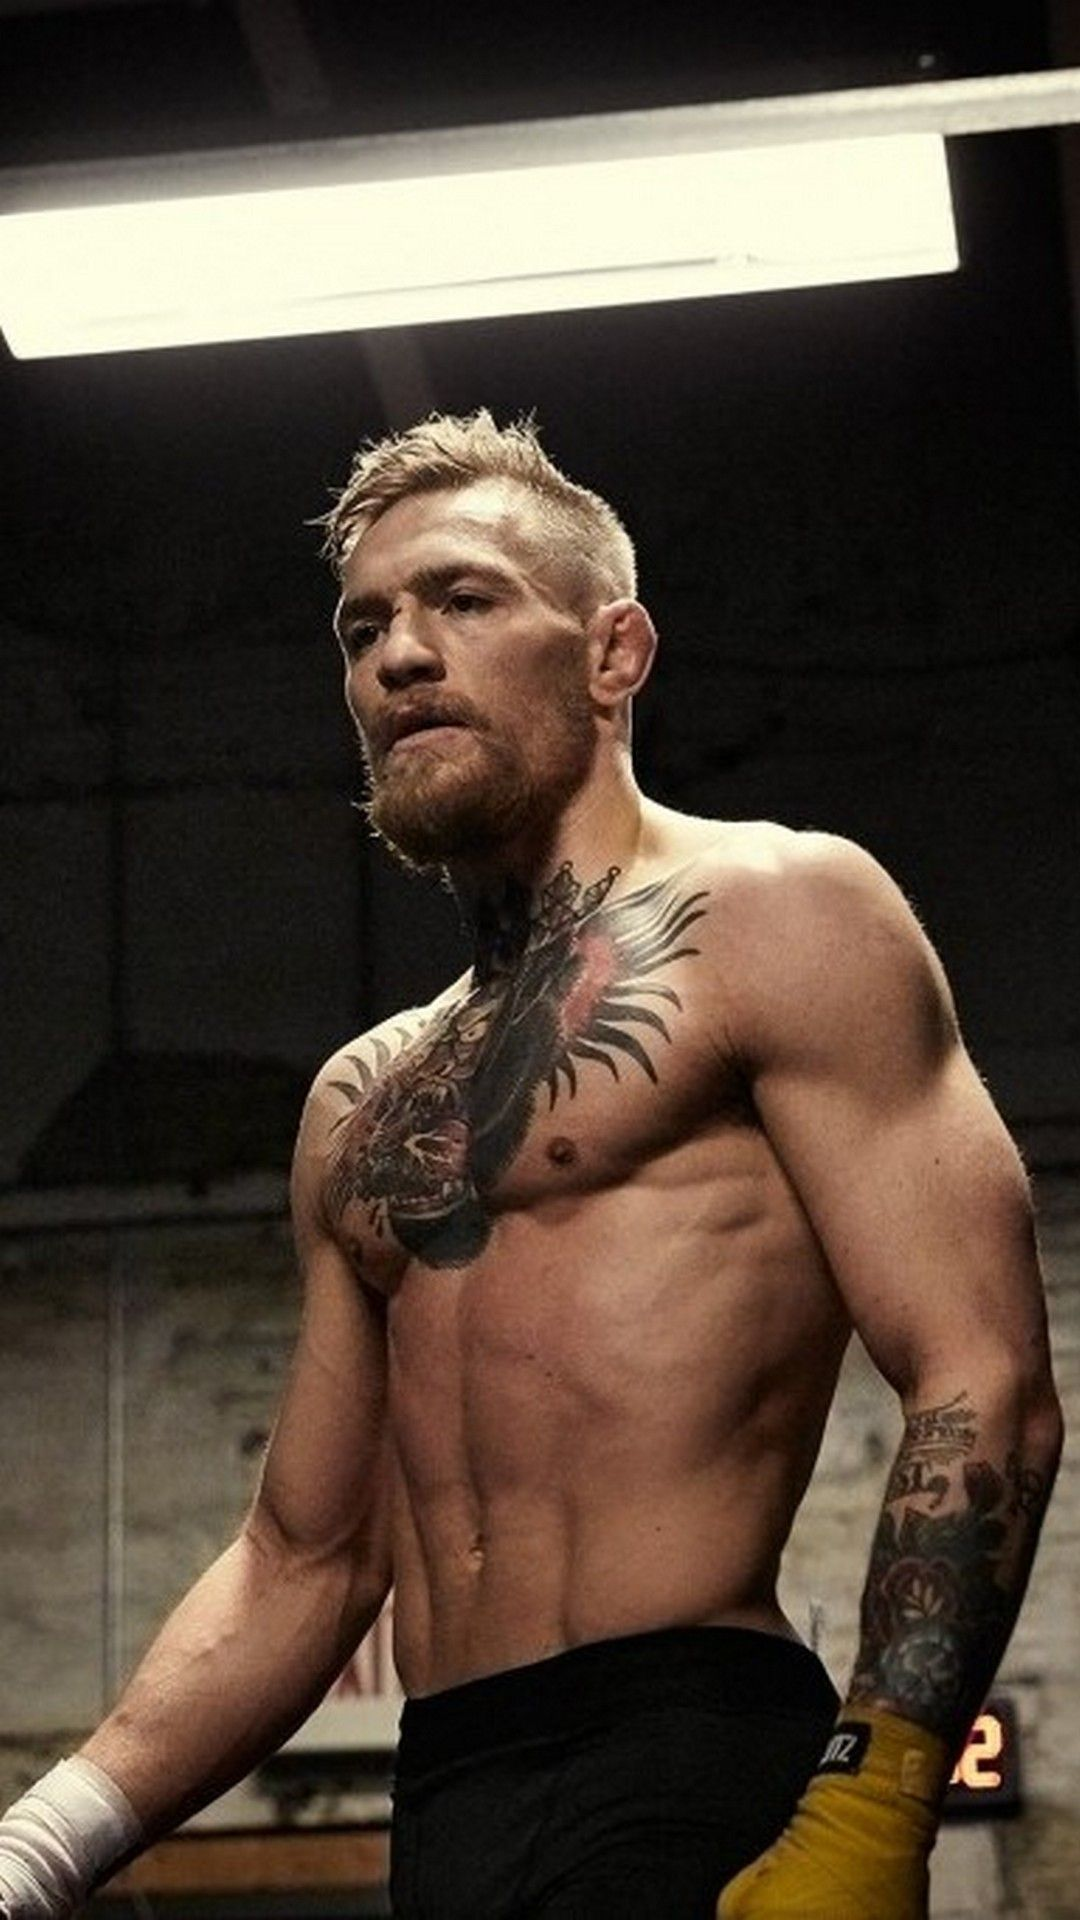 Conor Mcgregor Wallpaper For Mobile Best Iphone Wallpaper Conor Mcgregor Wallpaper Mcgregor Wallpapers Notorious Conor Mcgregor